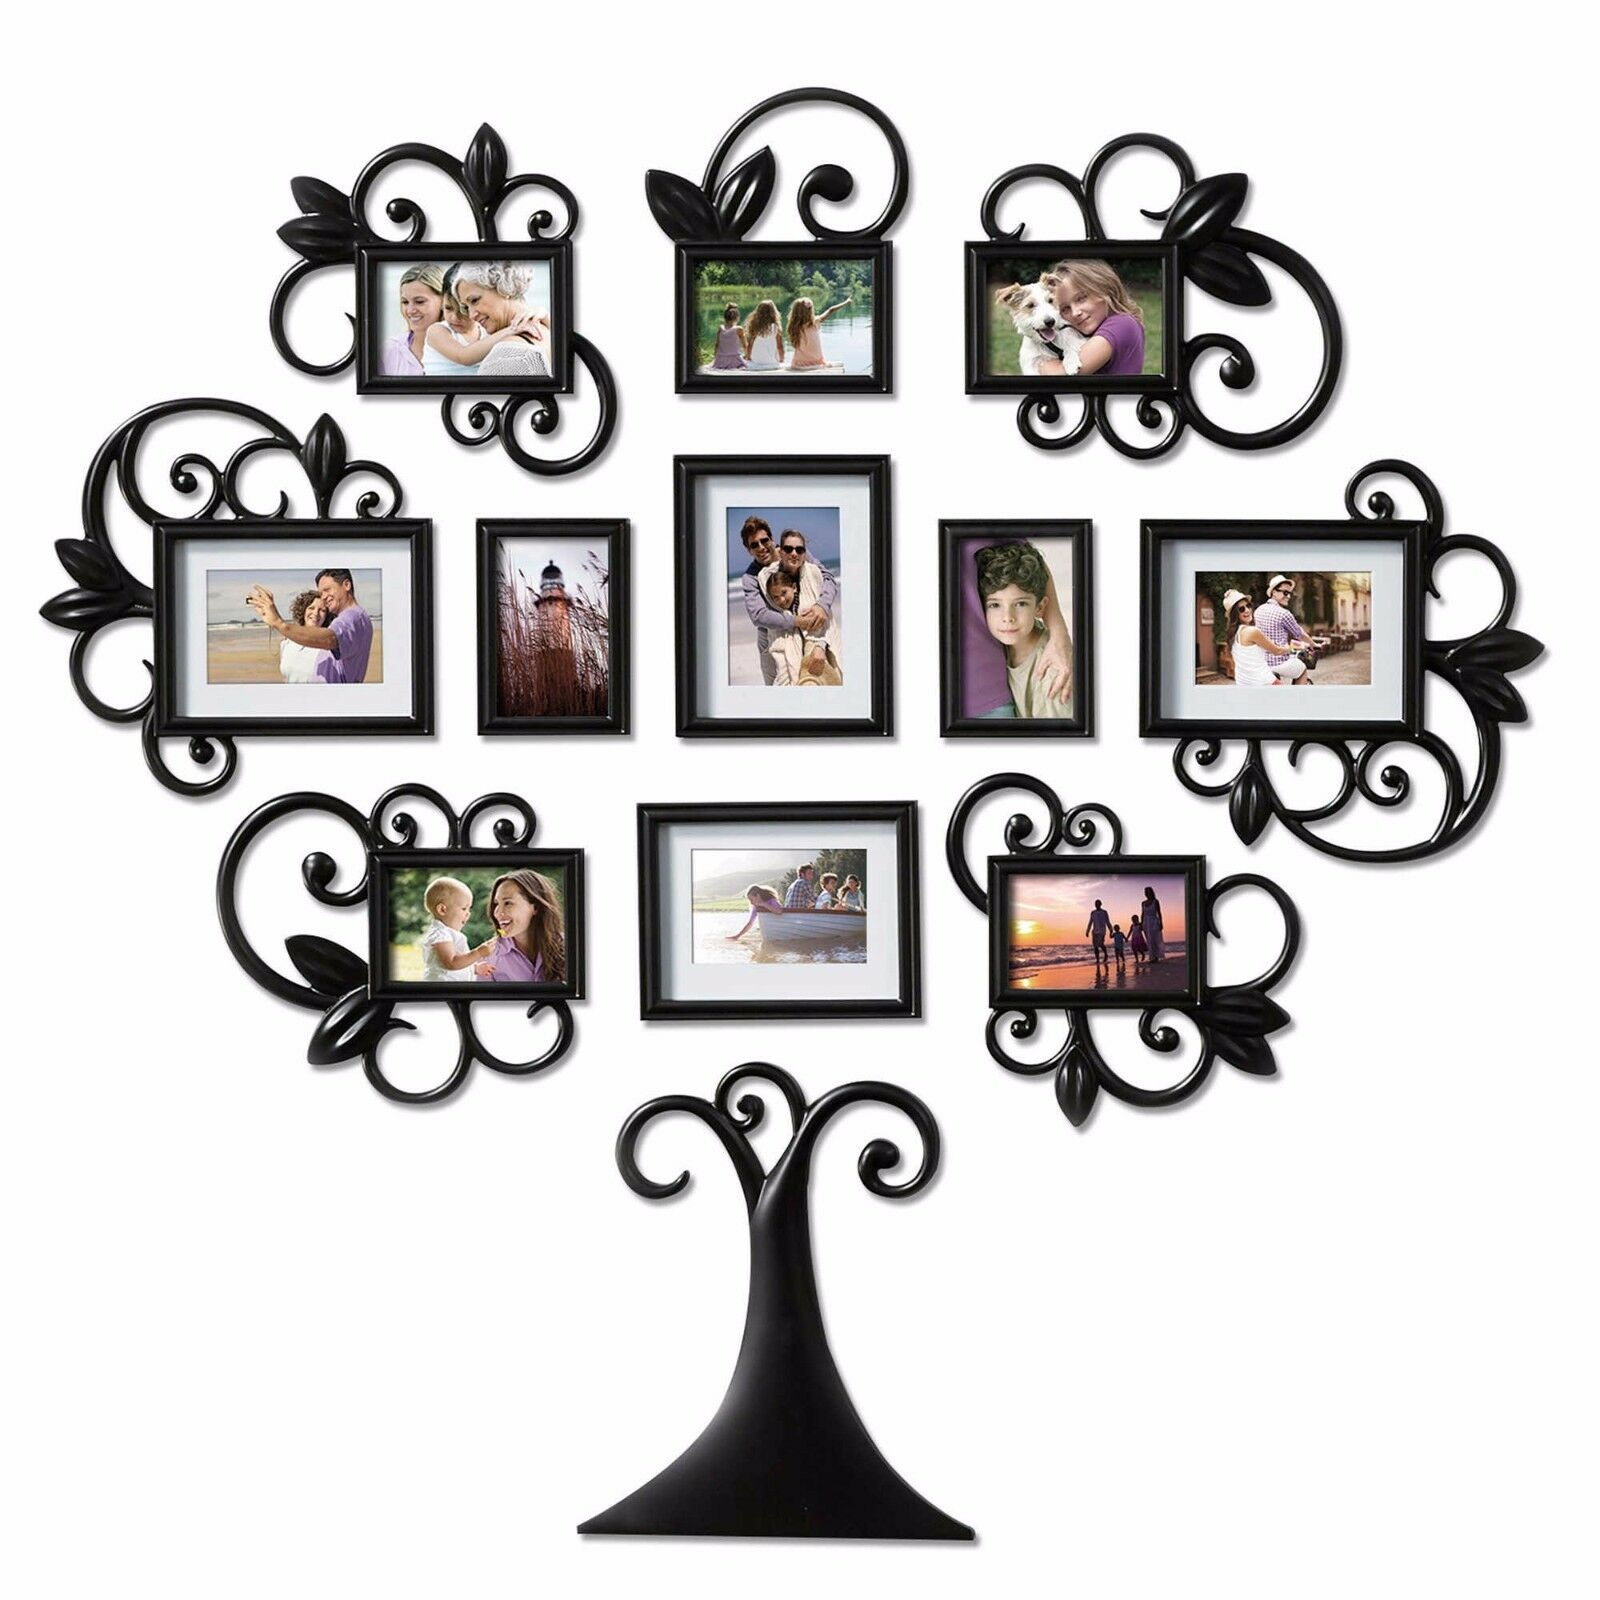 12 piece family tree photo picture frame collage set black wall 12 piece family tree photo picture frame collage set black wall art home decor jeuxipadfo Choice Image